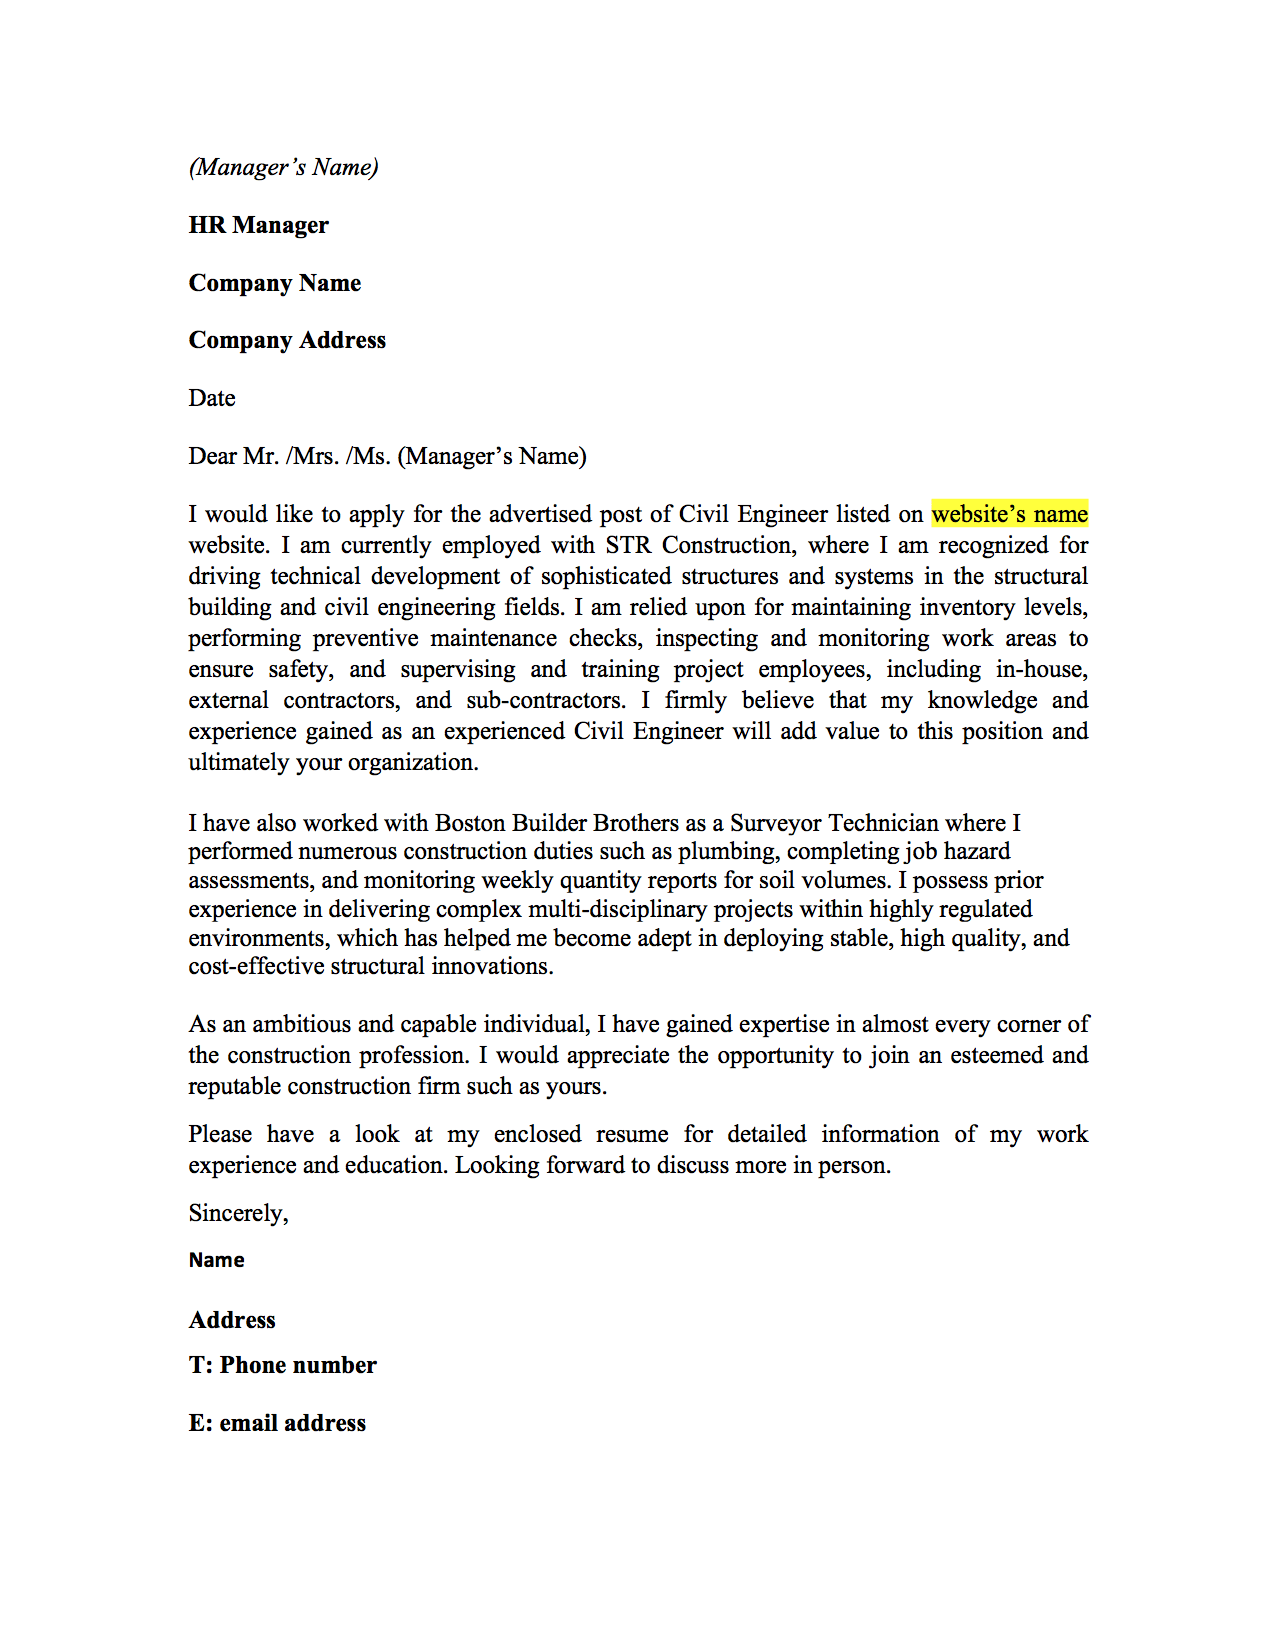 McKinsey Cover Letter Sample Cover Letter Templates